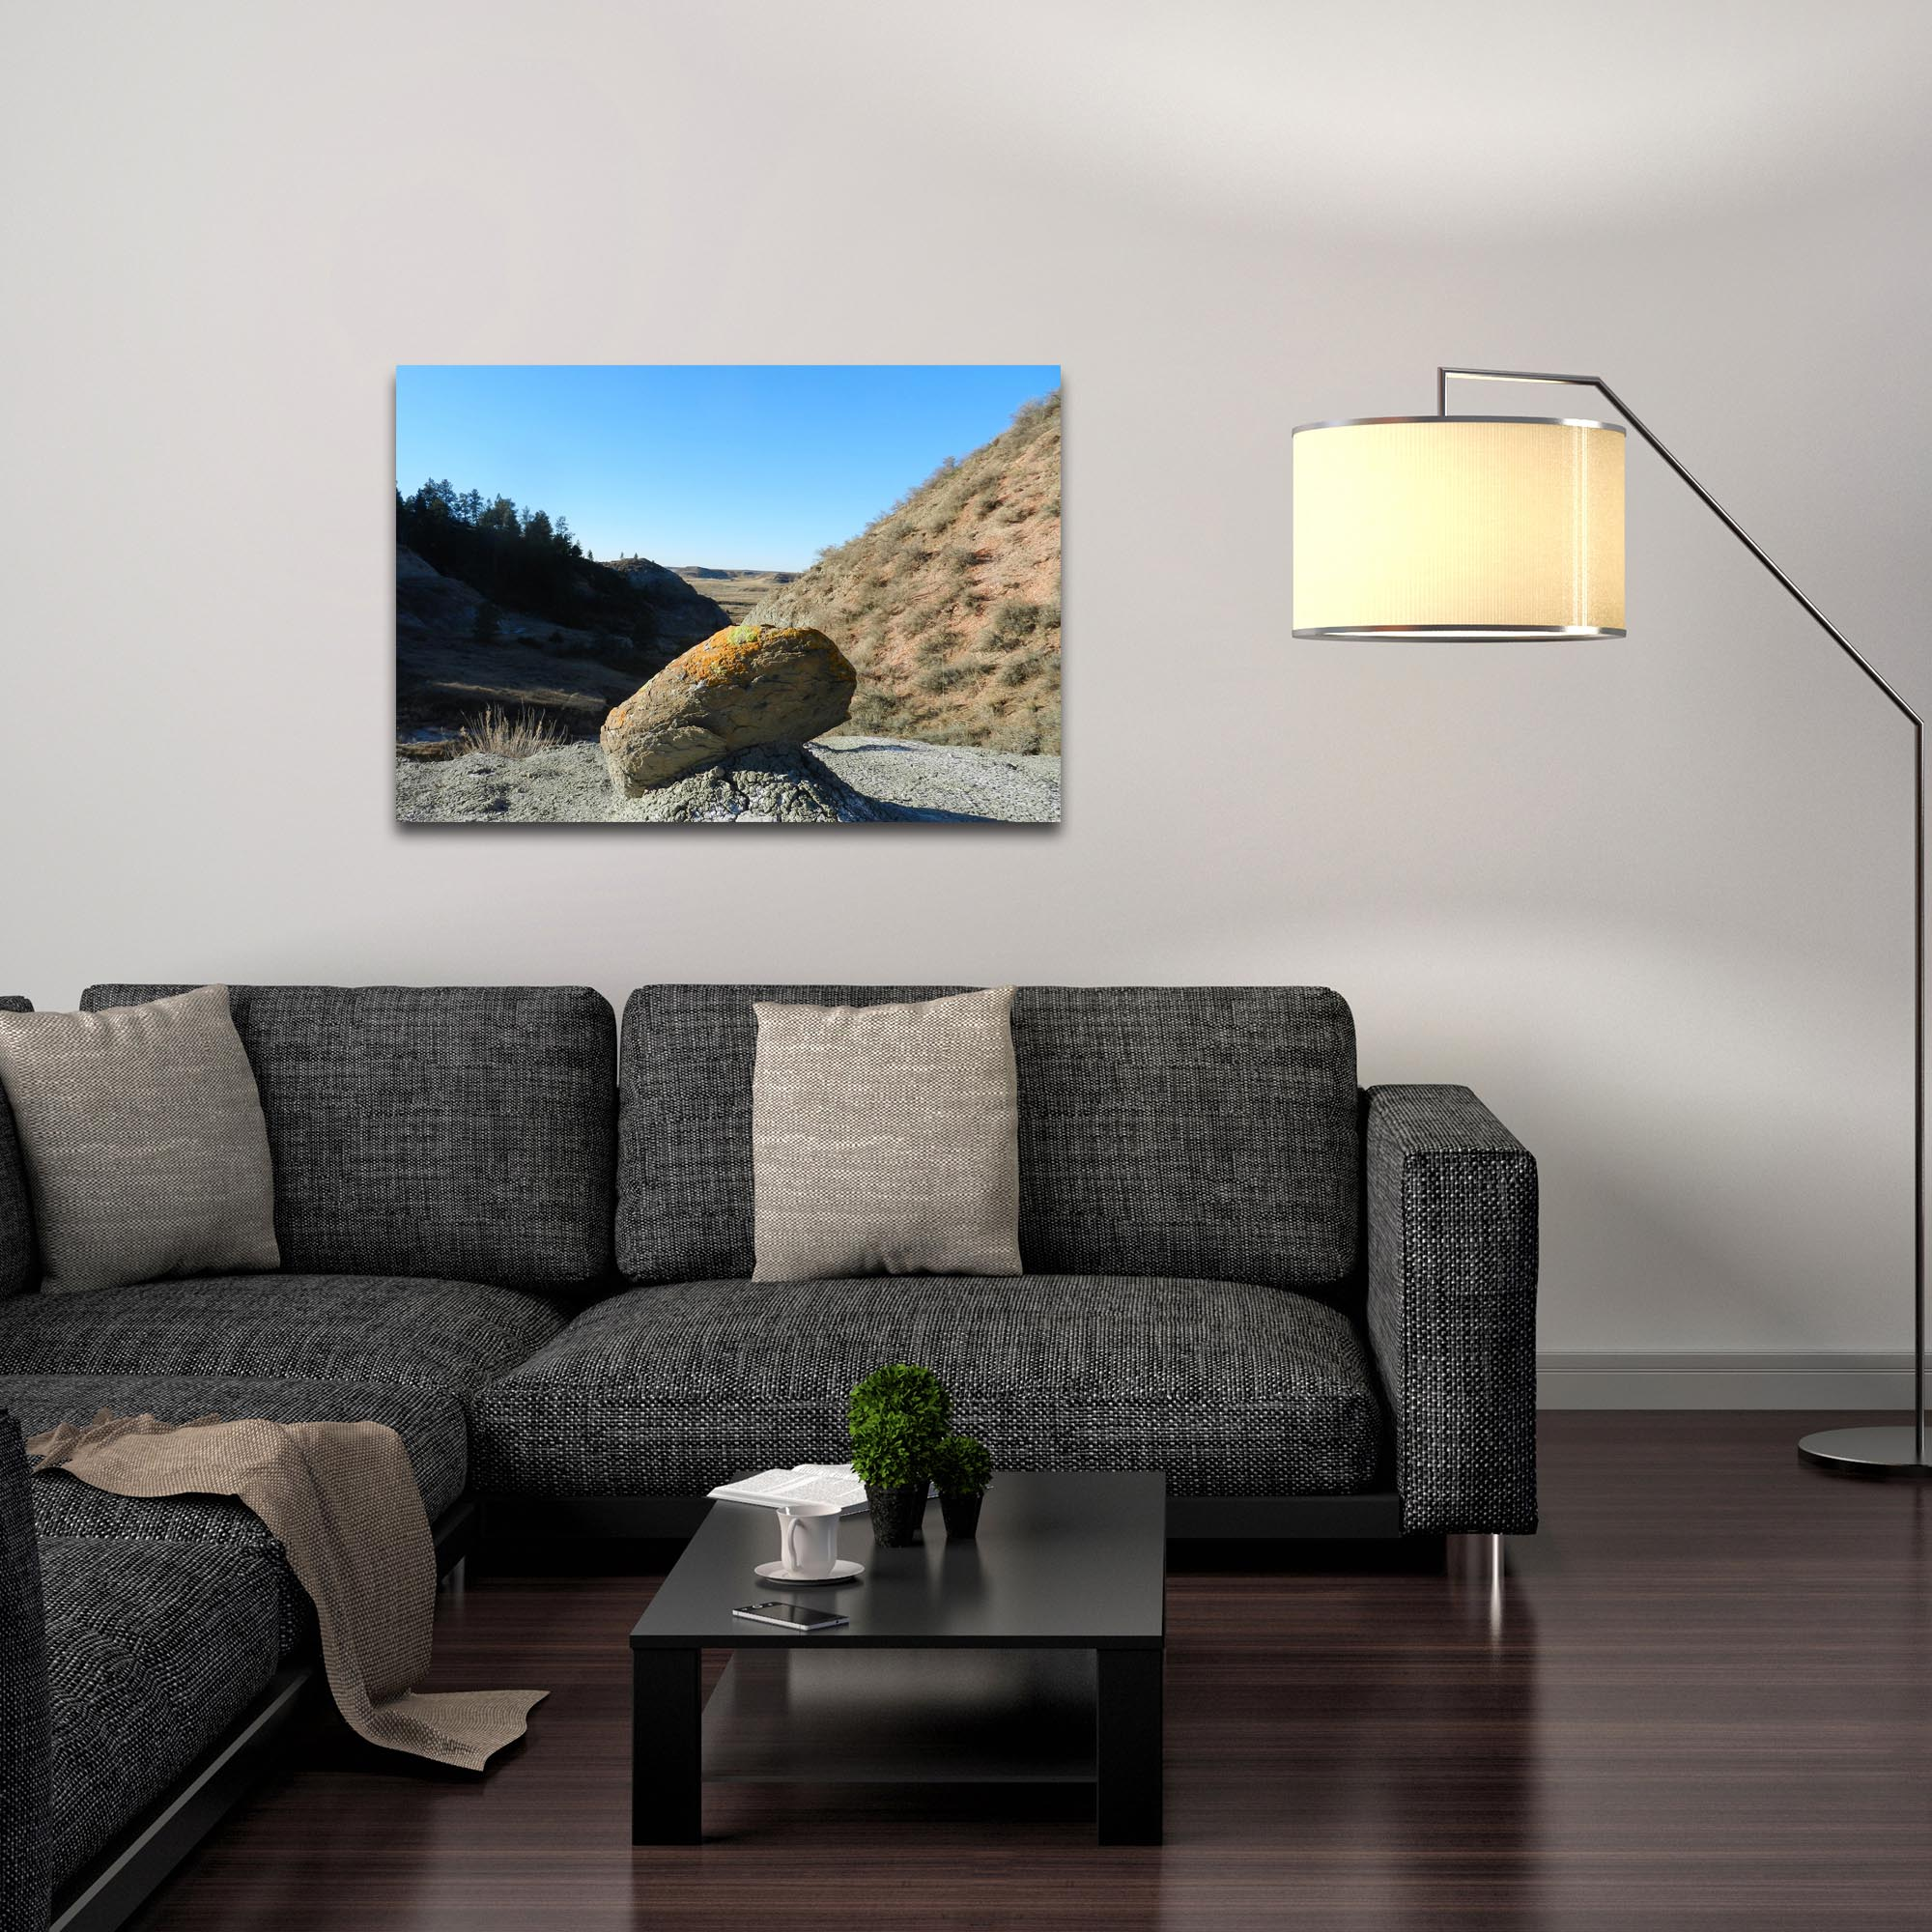 Western Wall Art 'The Rock' - American West Decor on Metal or Plexiglass - Lifestyle View